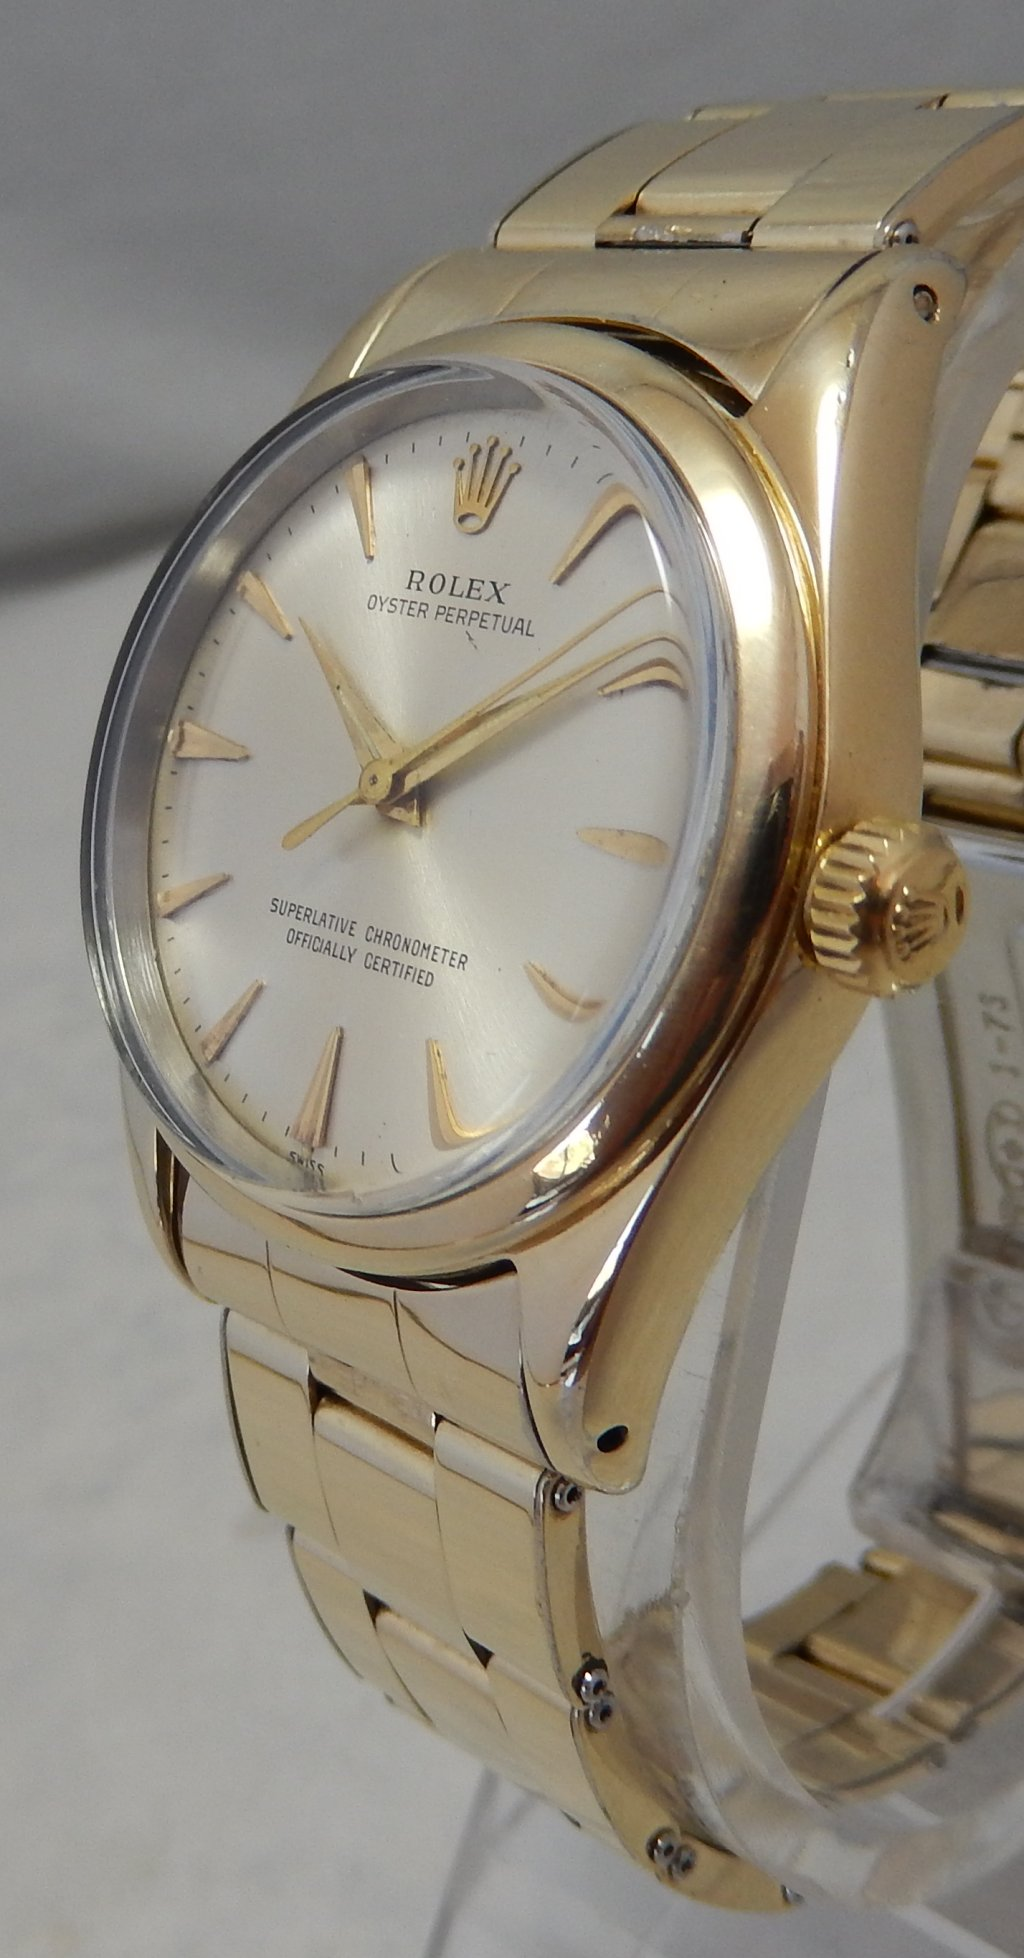 Details about Rolex Oyster Perpetual Gold Capped Model 1014 Mens Watch All  Original 1960s